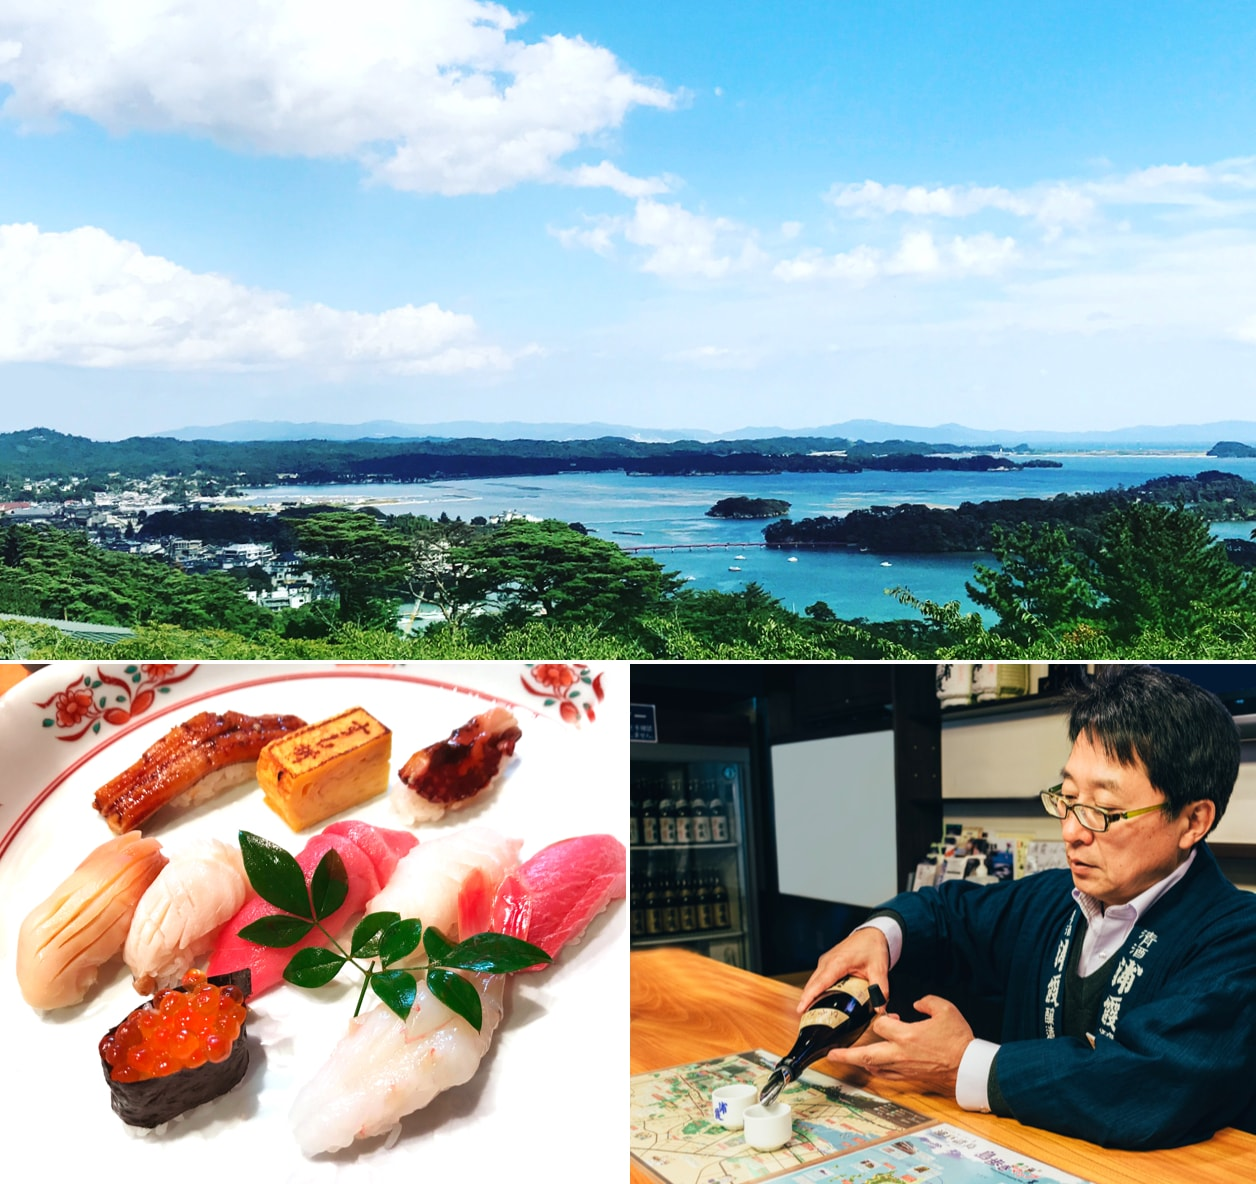 You can enjoy fresh sushi and sake at shiogama area